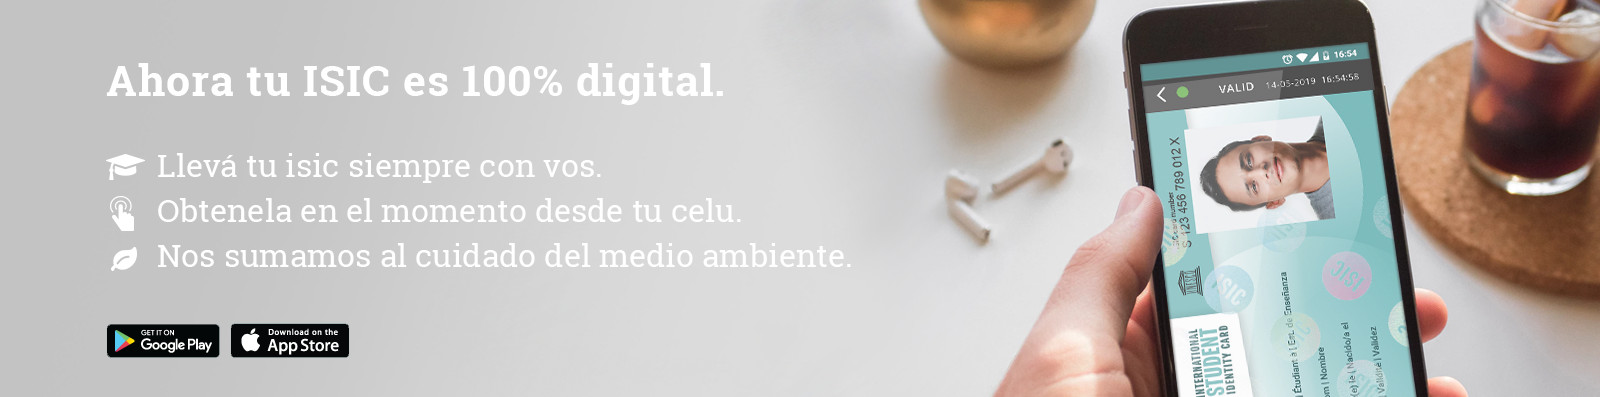 ISIC Digital